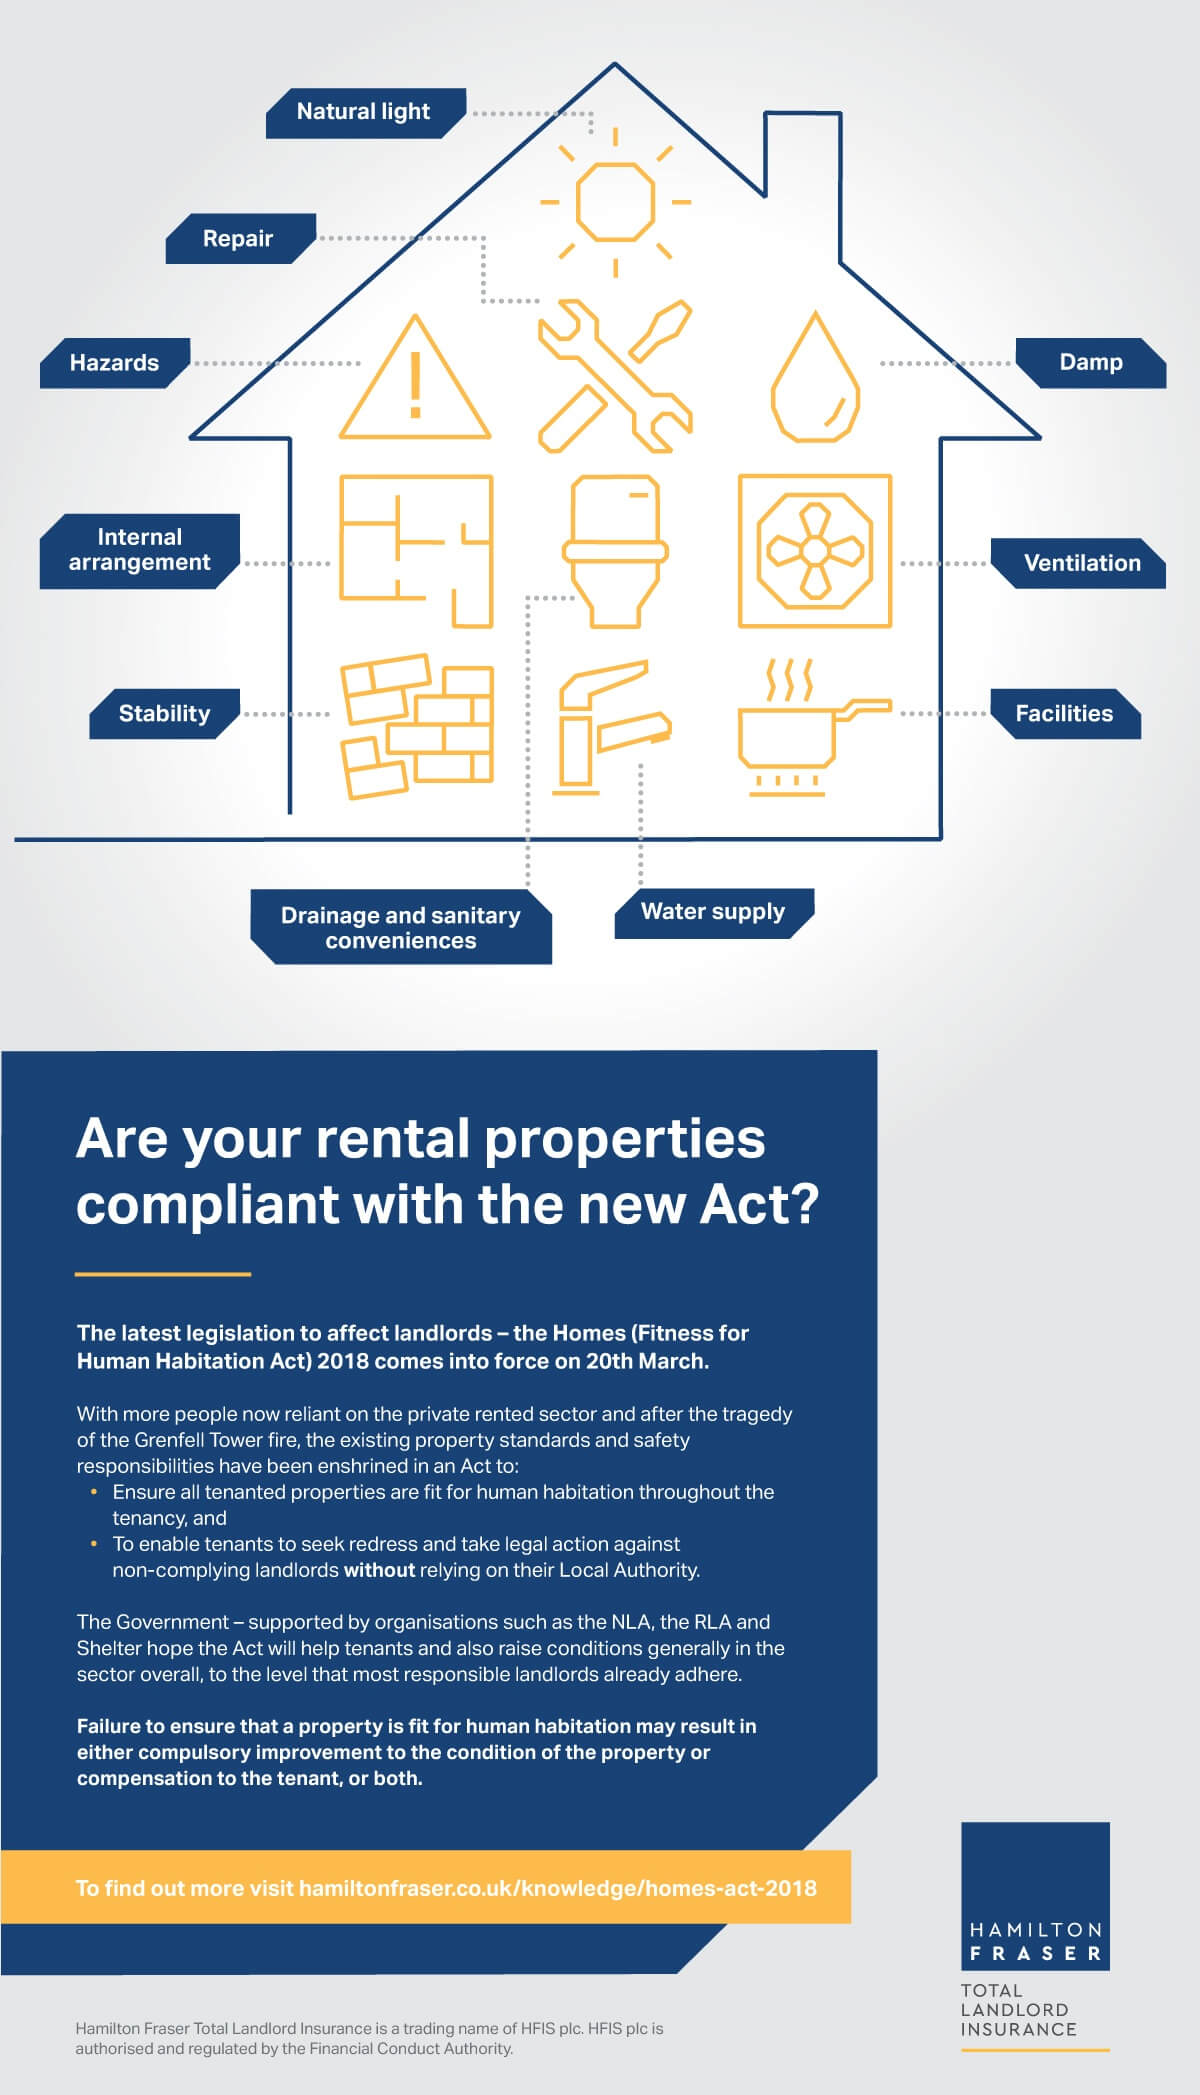 Infographic: Are you compliant with the Homes (Fitness for Human Habitation Act) 2018?